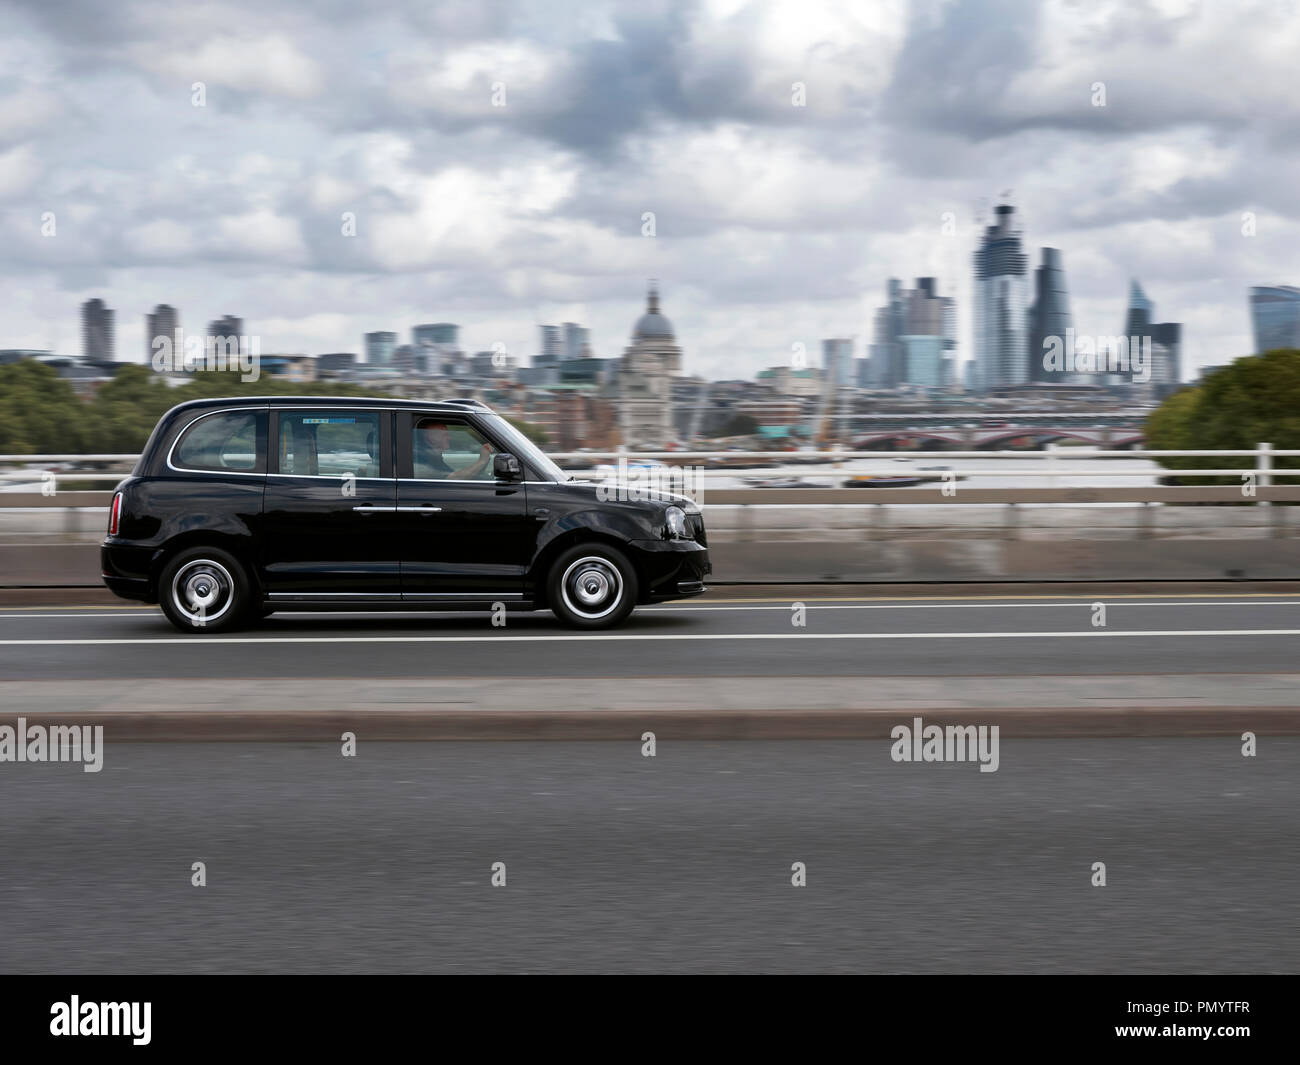 Taxi électrique TX LEVC conduite sur Waterloo Bridge, London UK Photo Stock